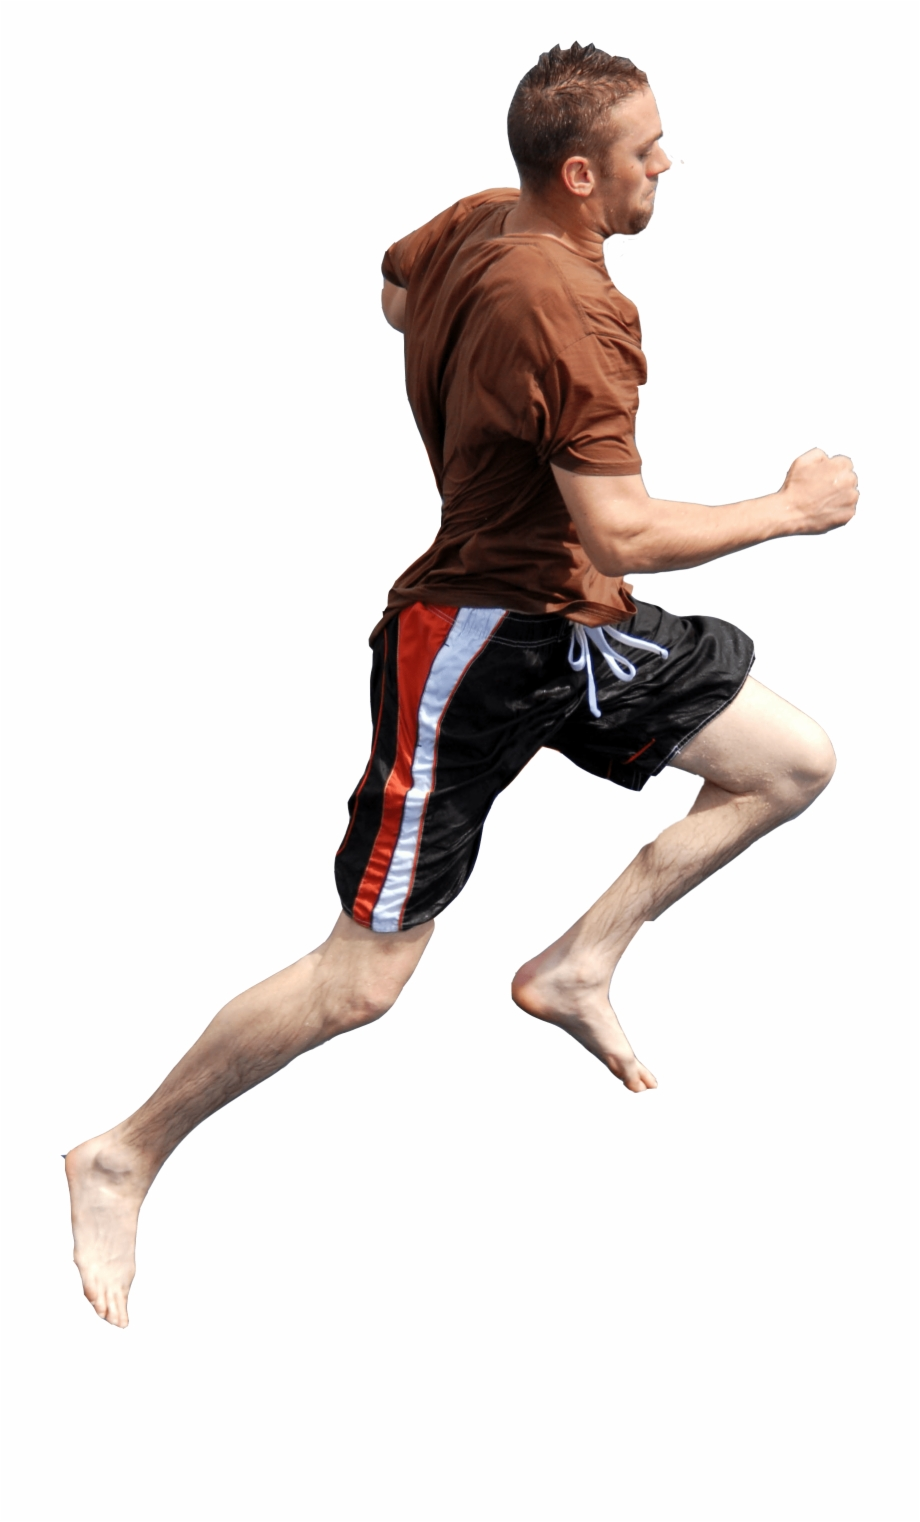 Man Jumping Man Exercise Png Transparent Png Download 900049 Vippng